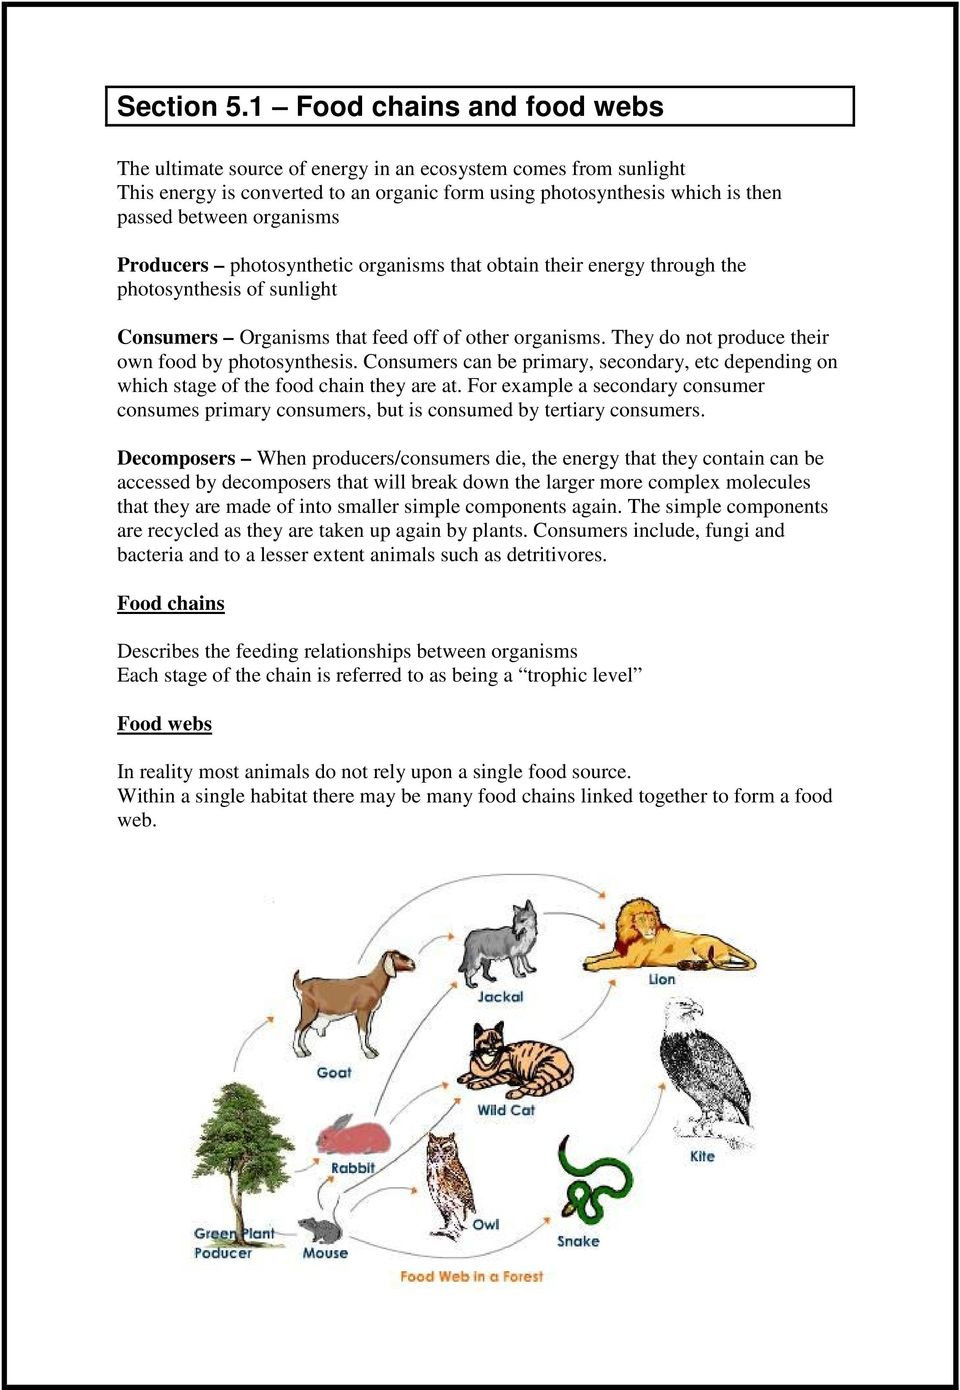 Food Web Worksheet Answers